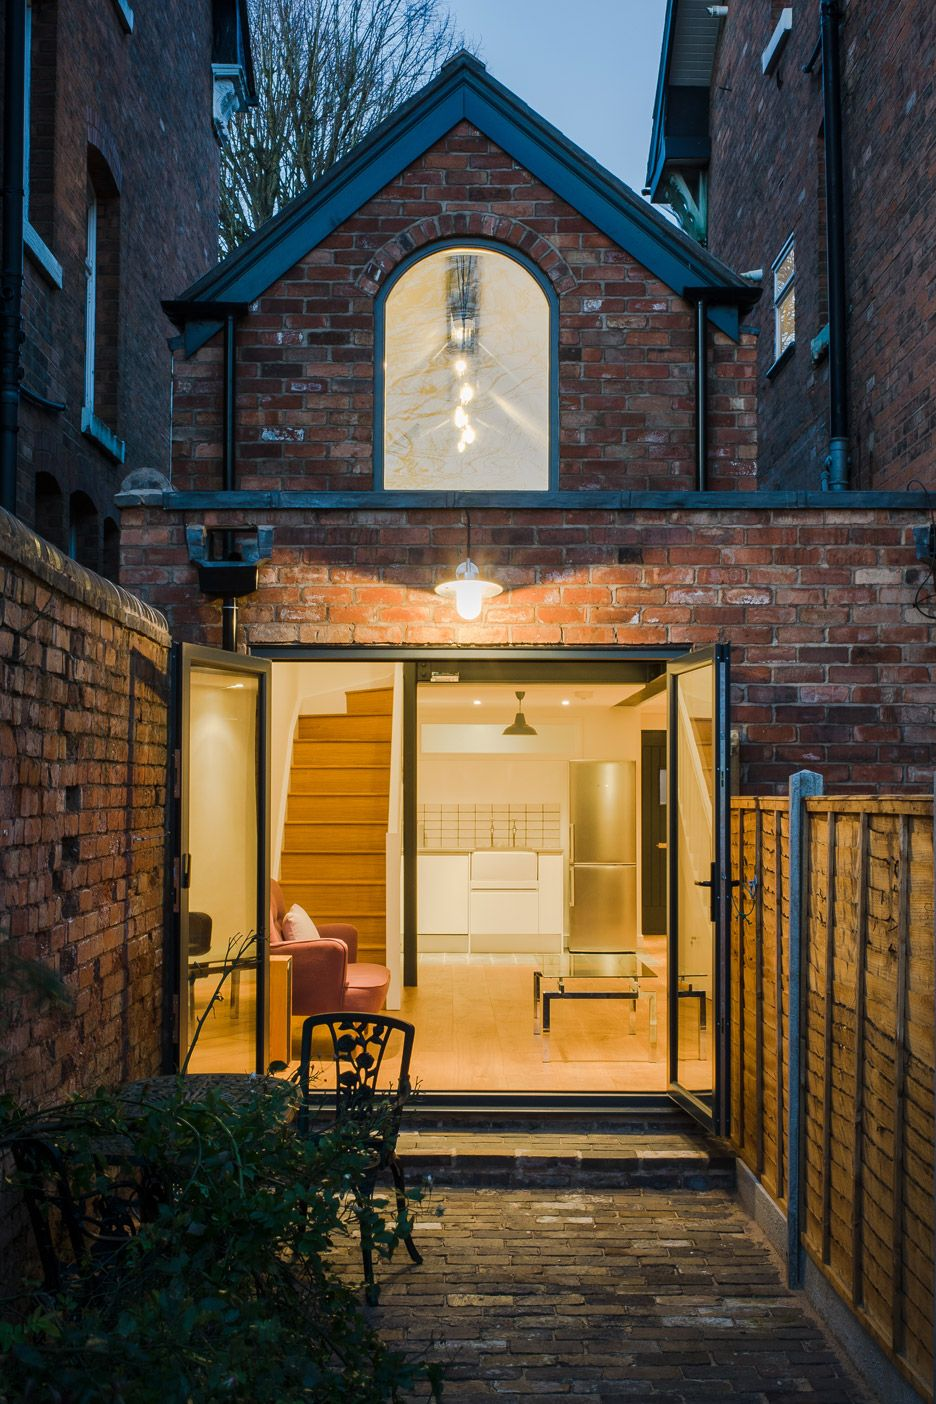 writers-coach-house-intervention-architecture-studio-renovation-moseley-birmingham-england_dezeen_936_16